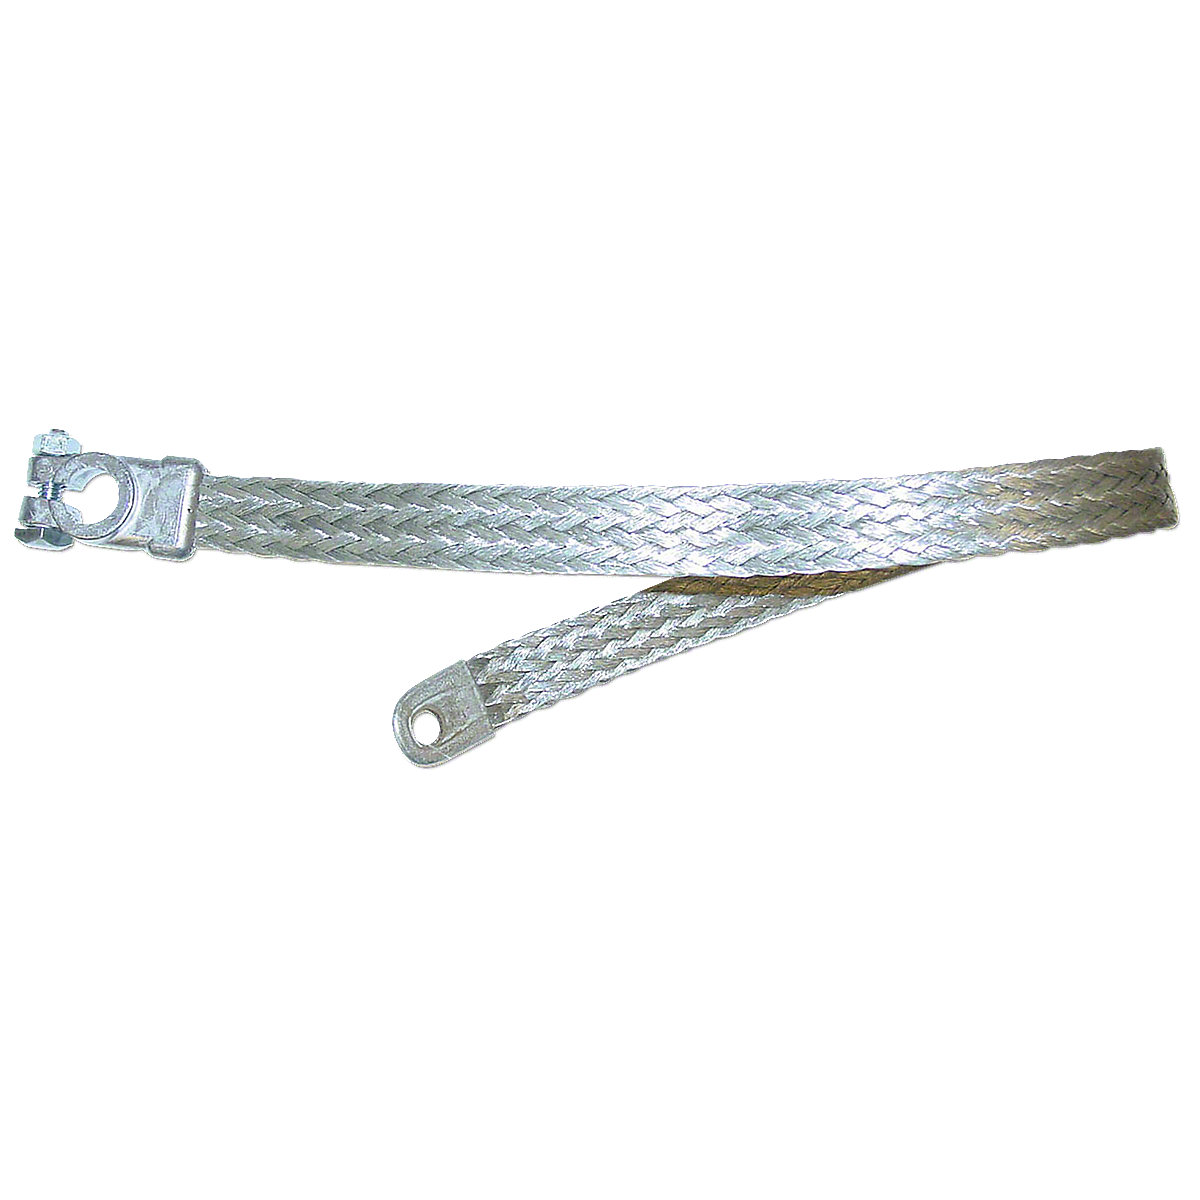 24 Battery Cable For Massey Harris and Massey Ferguson Tractors.